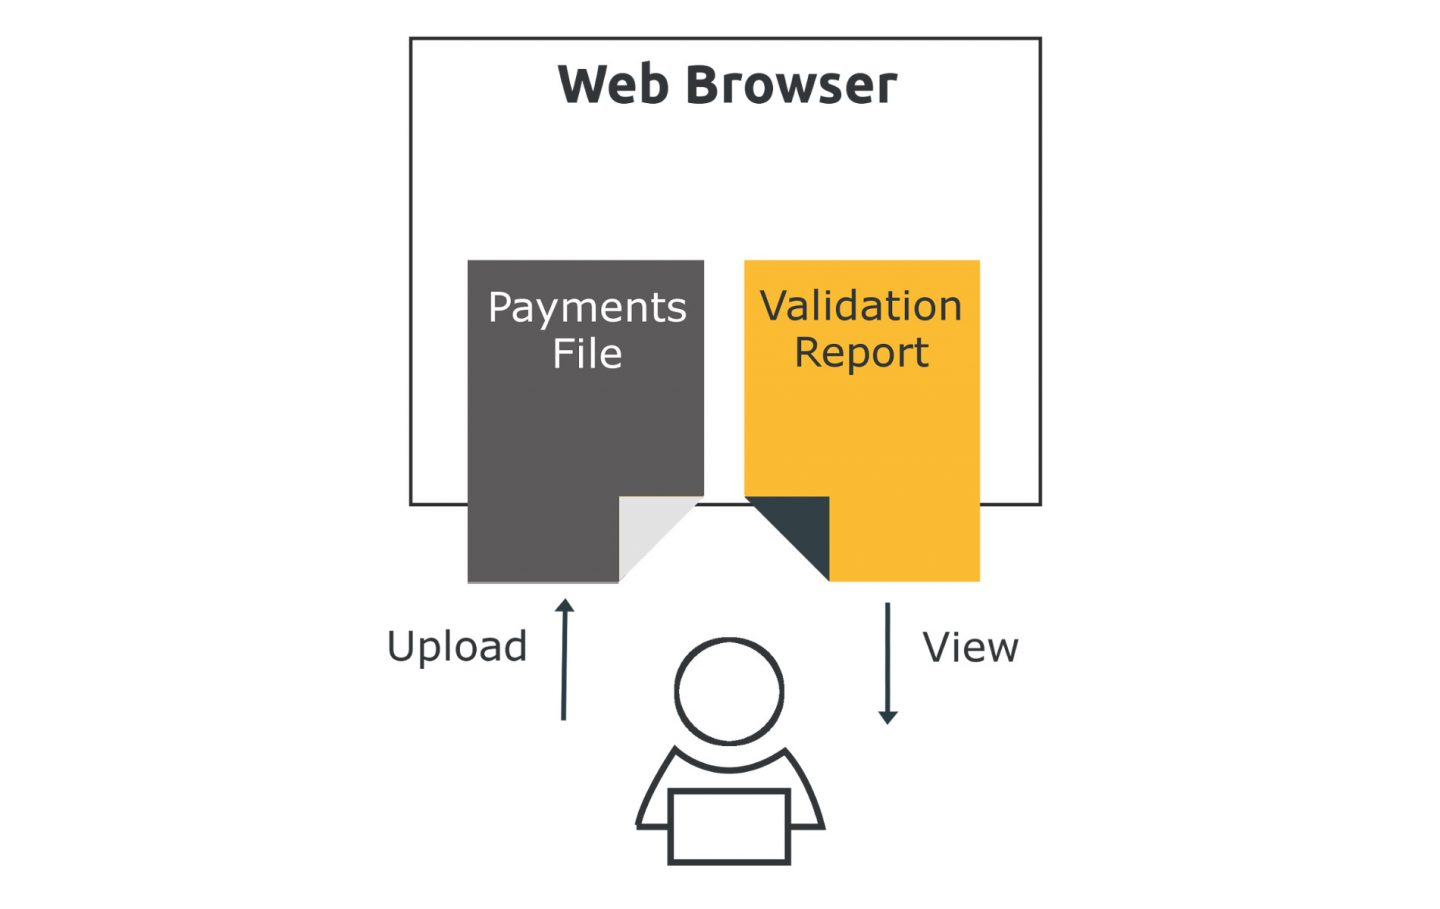 How The Validator Works